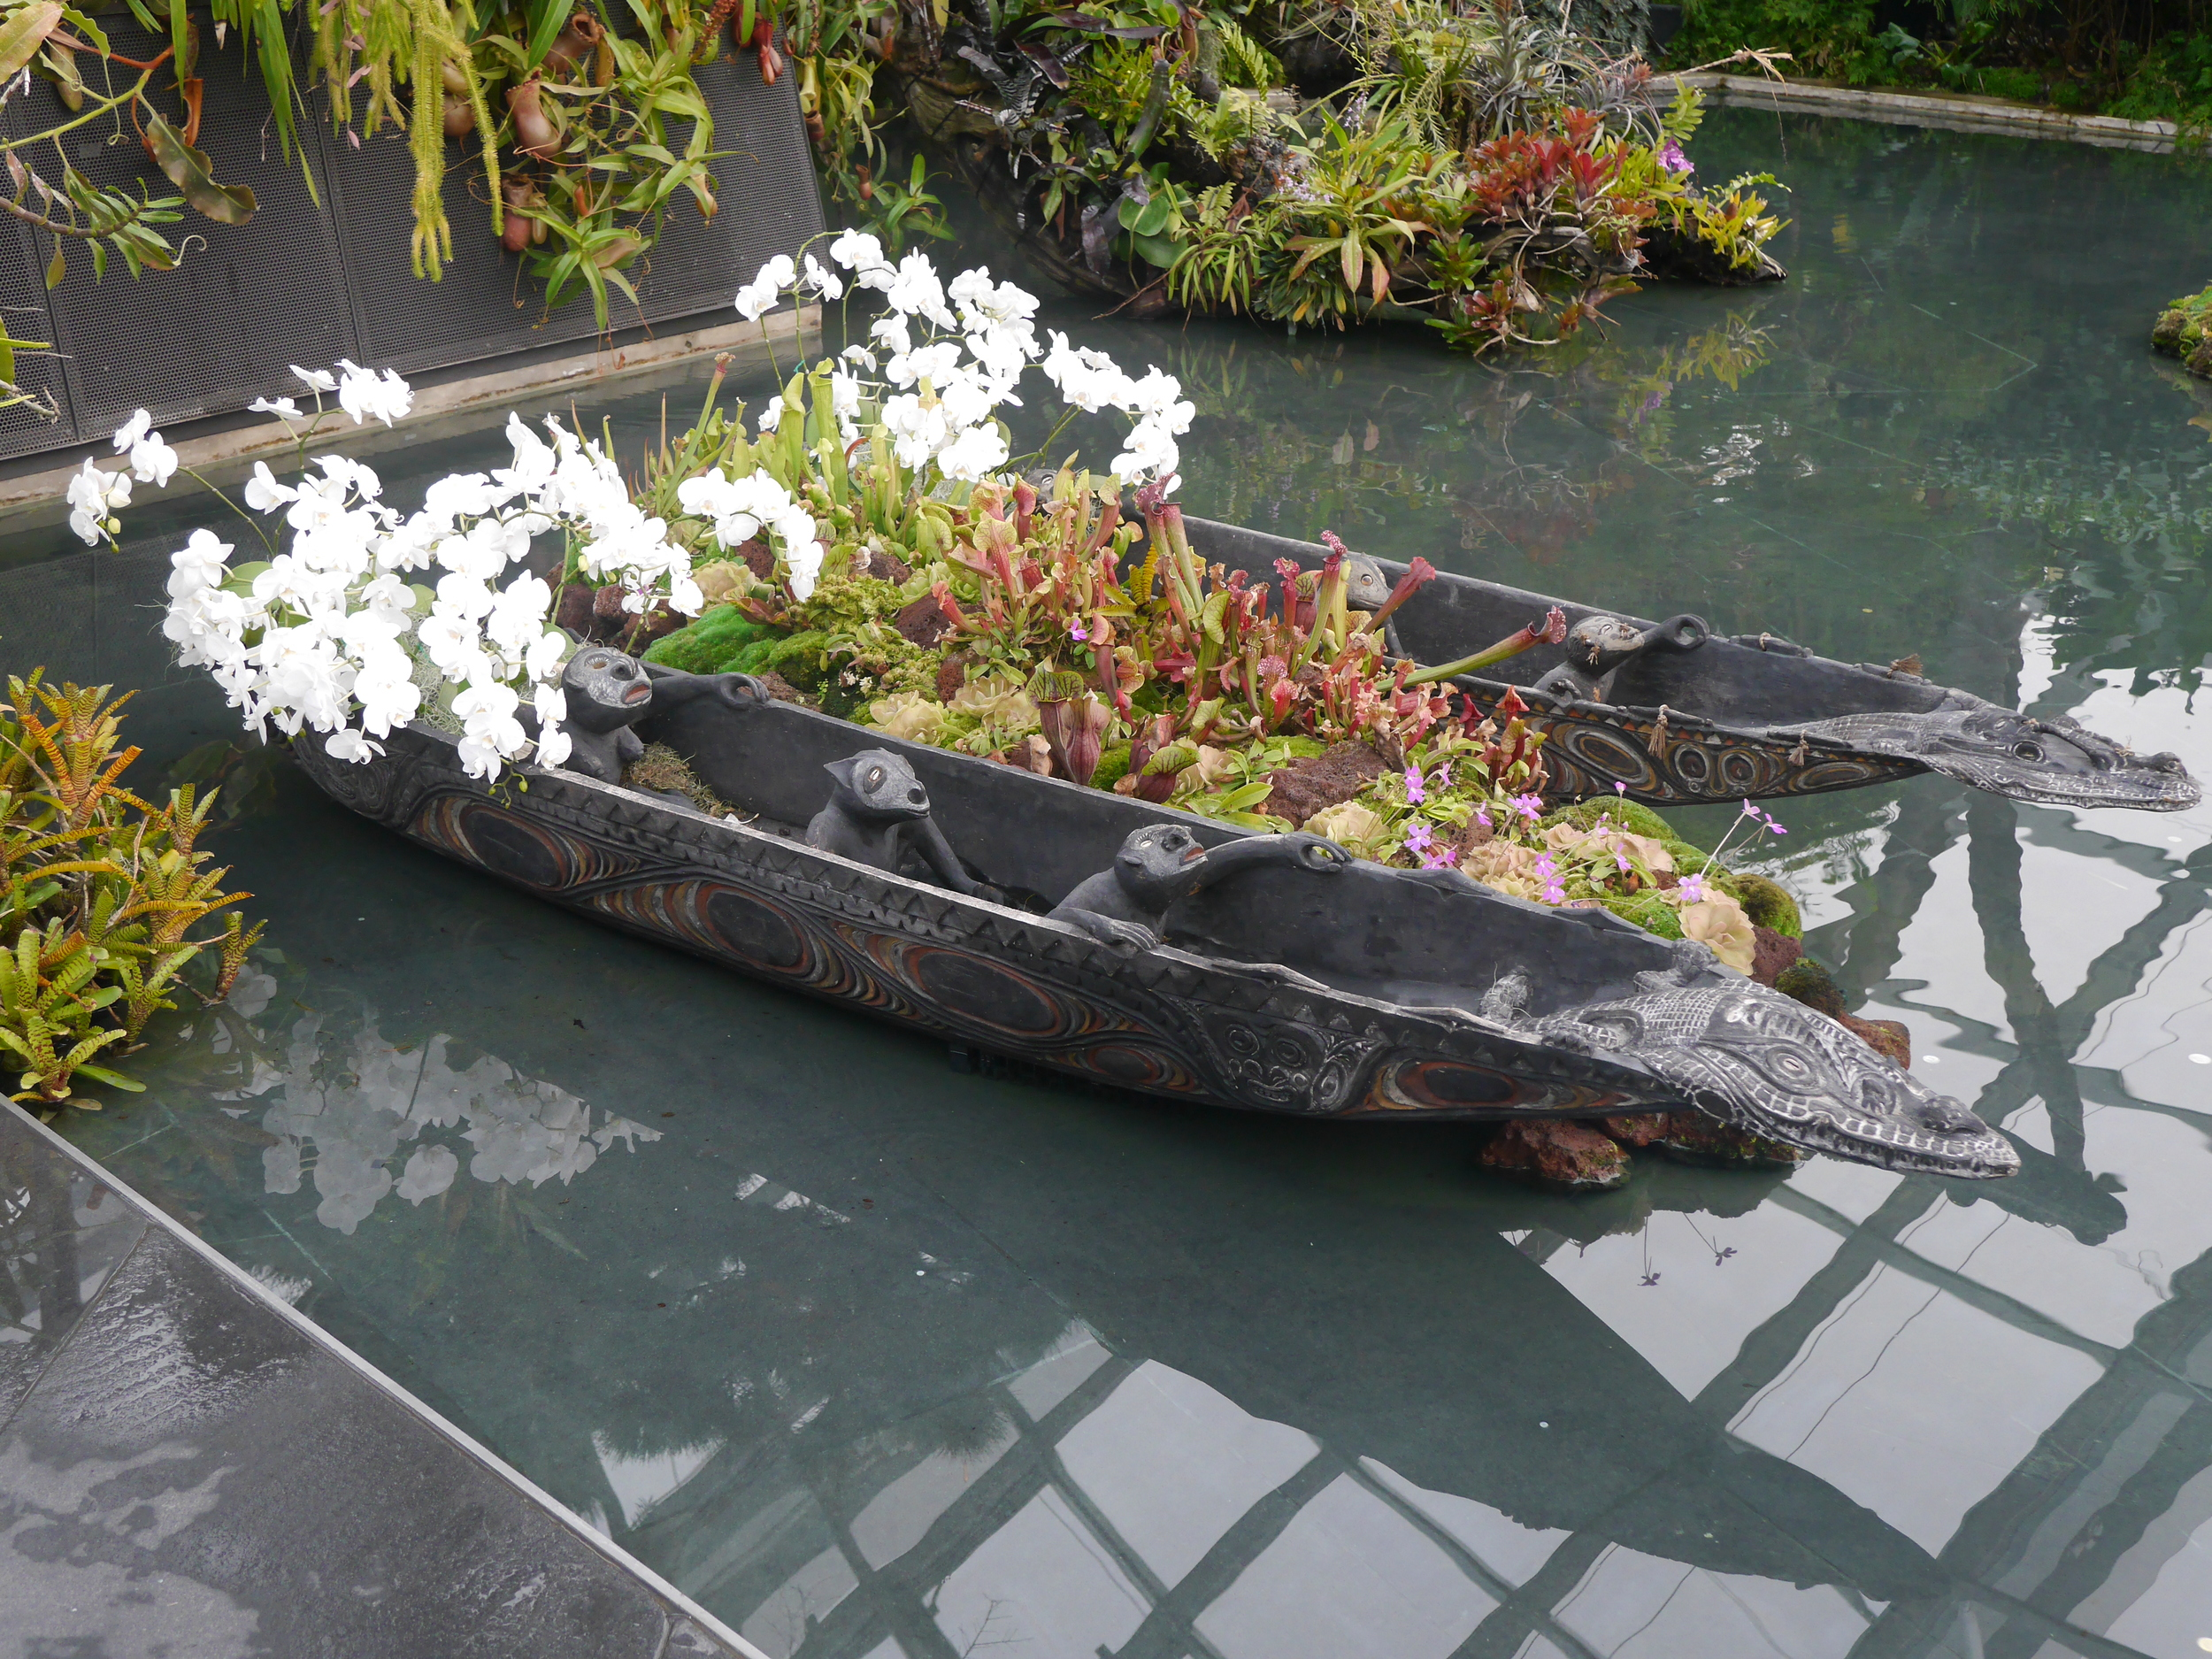 Canoes with some fierce passengers (and orchids).